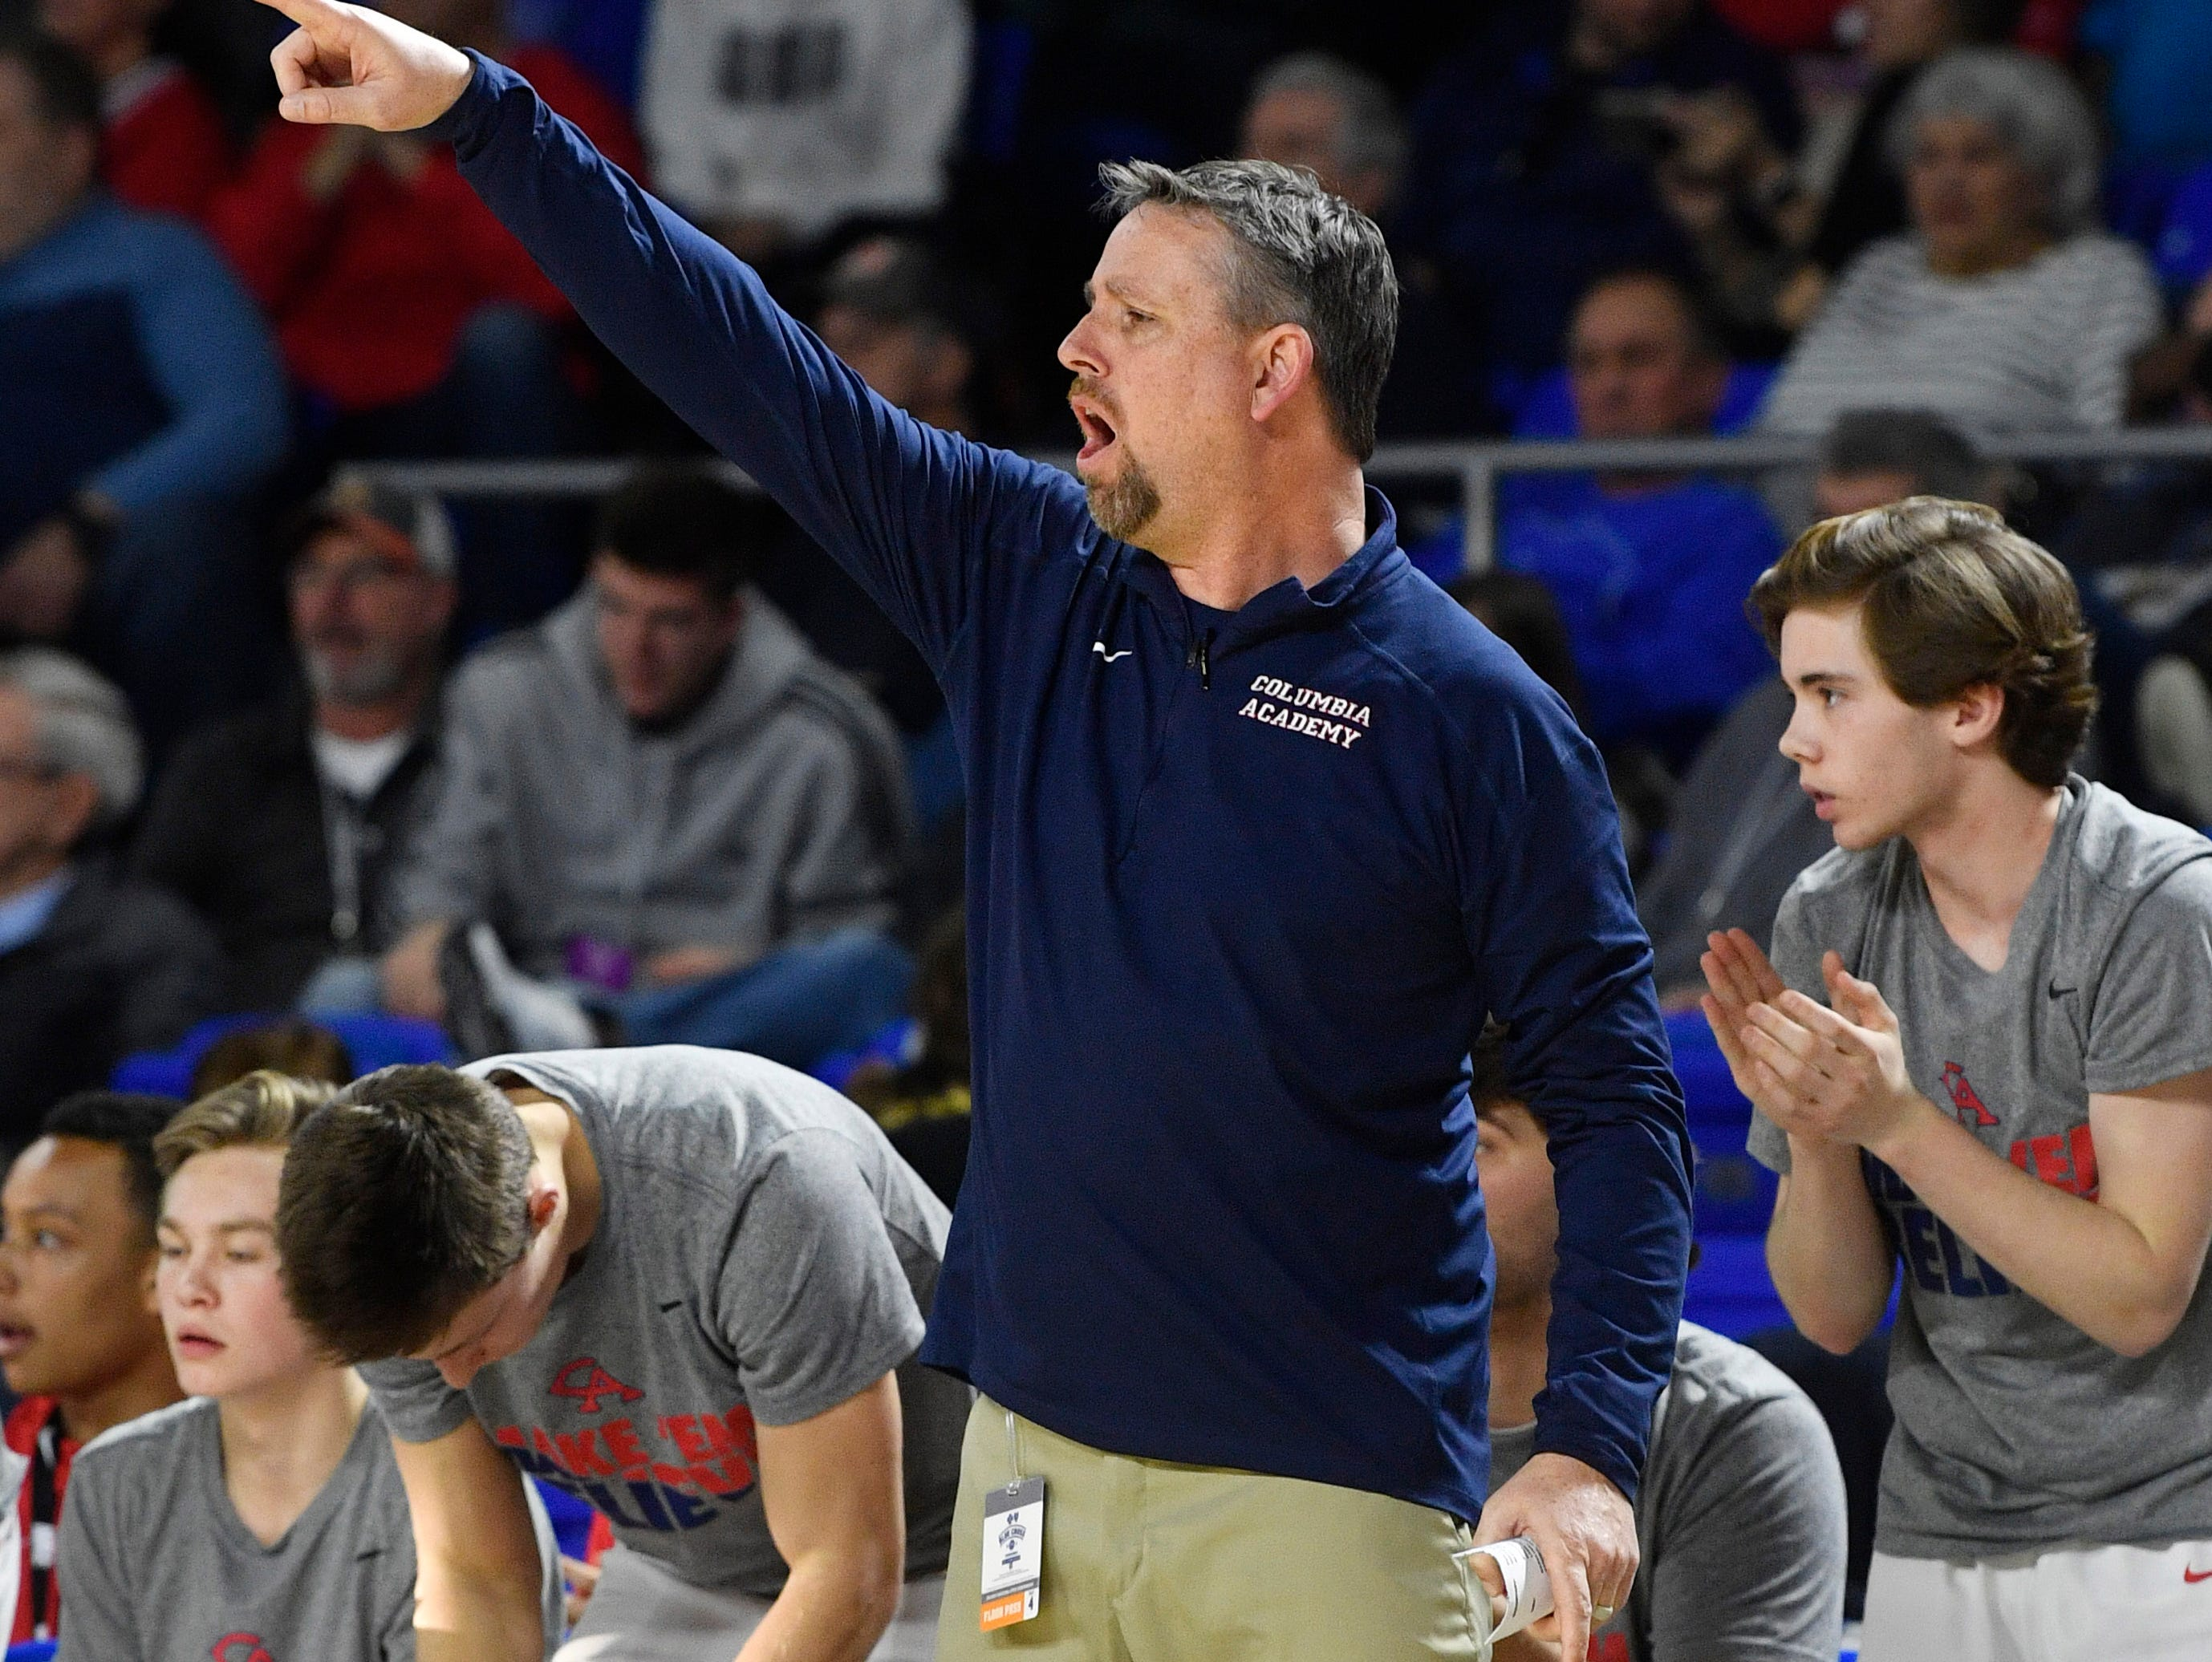 Columbia Academy head coach Marty DeJarnette instructs his players as Columbia Academy plays Humboldt for the TSSAA Class A Championship  Saturday, March 16, 2019, in Murfreesboro, Tenn.